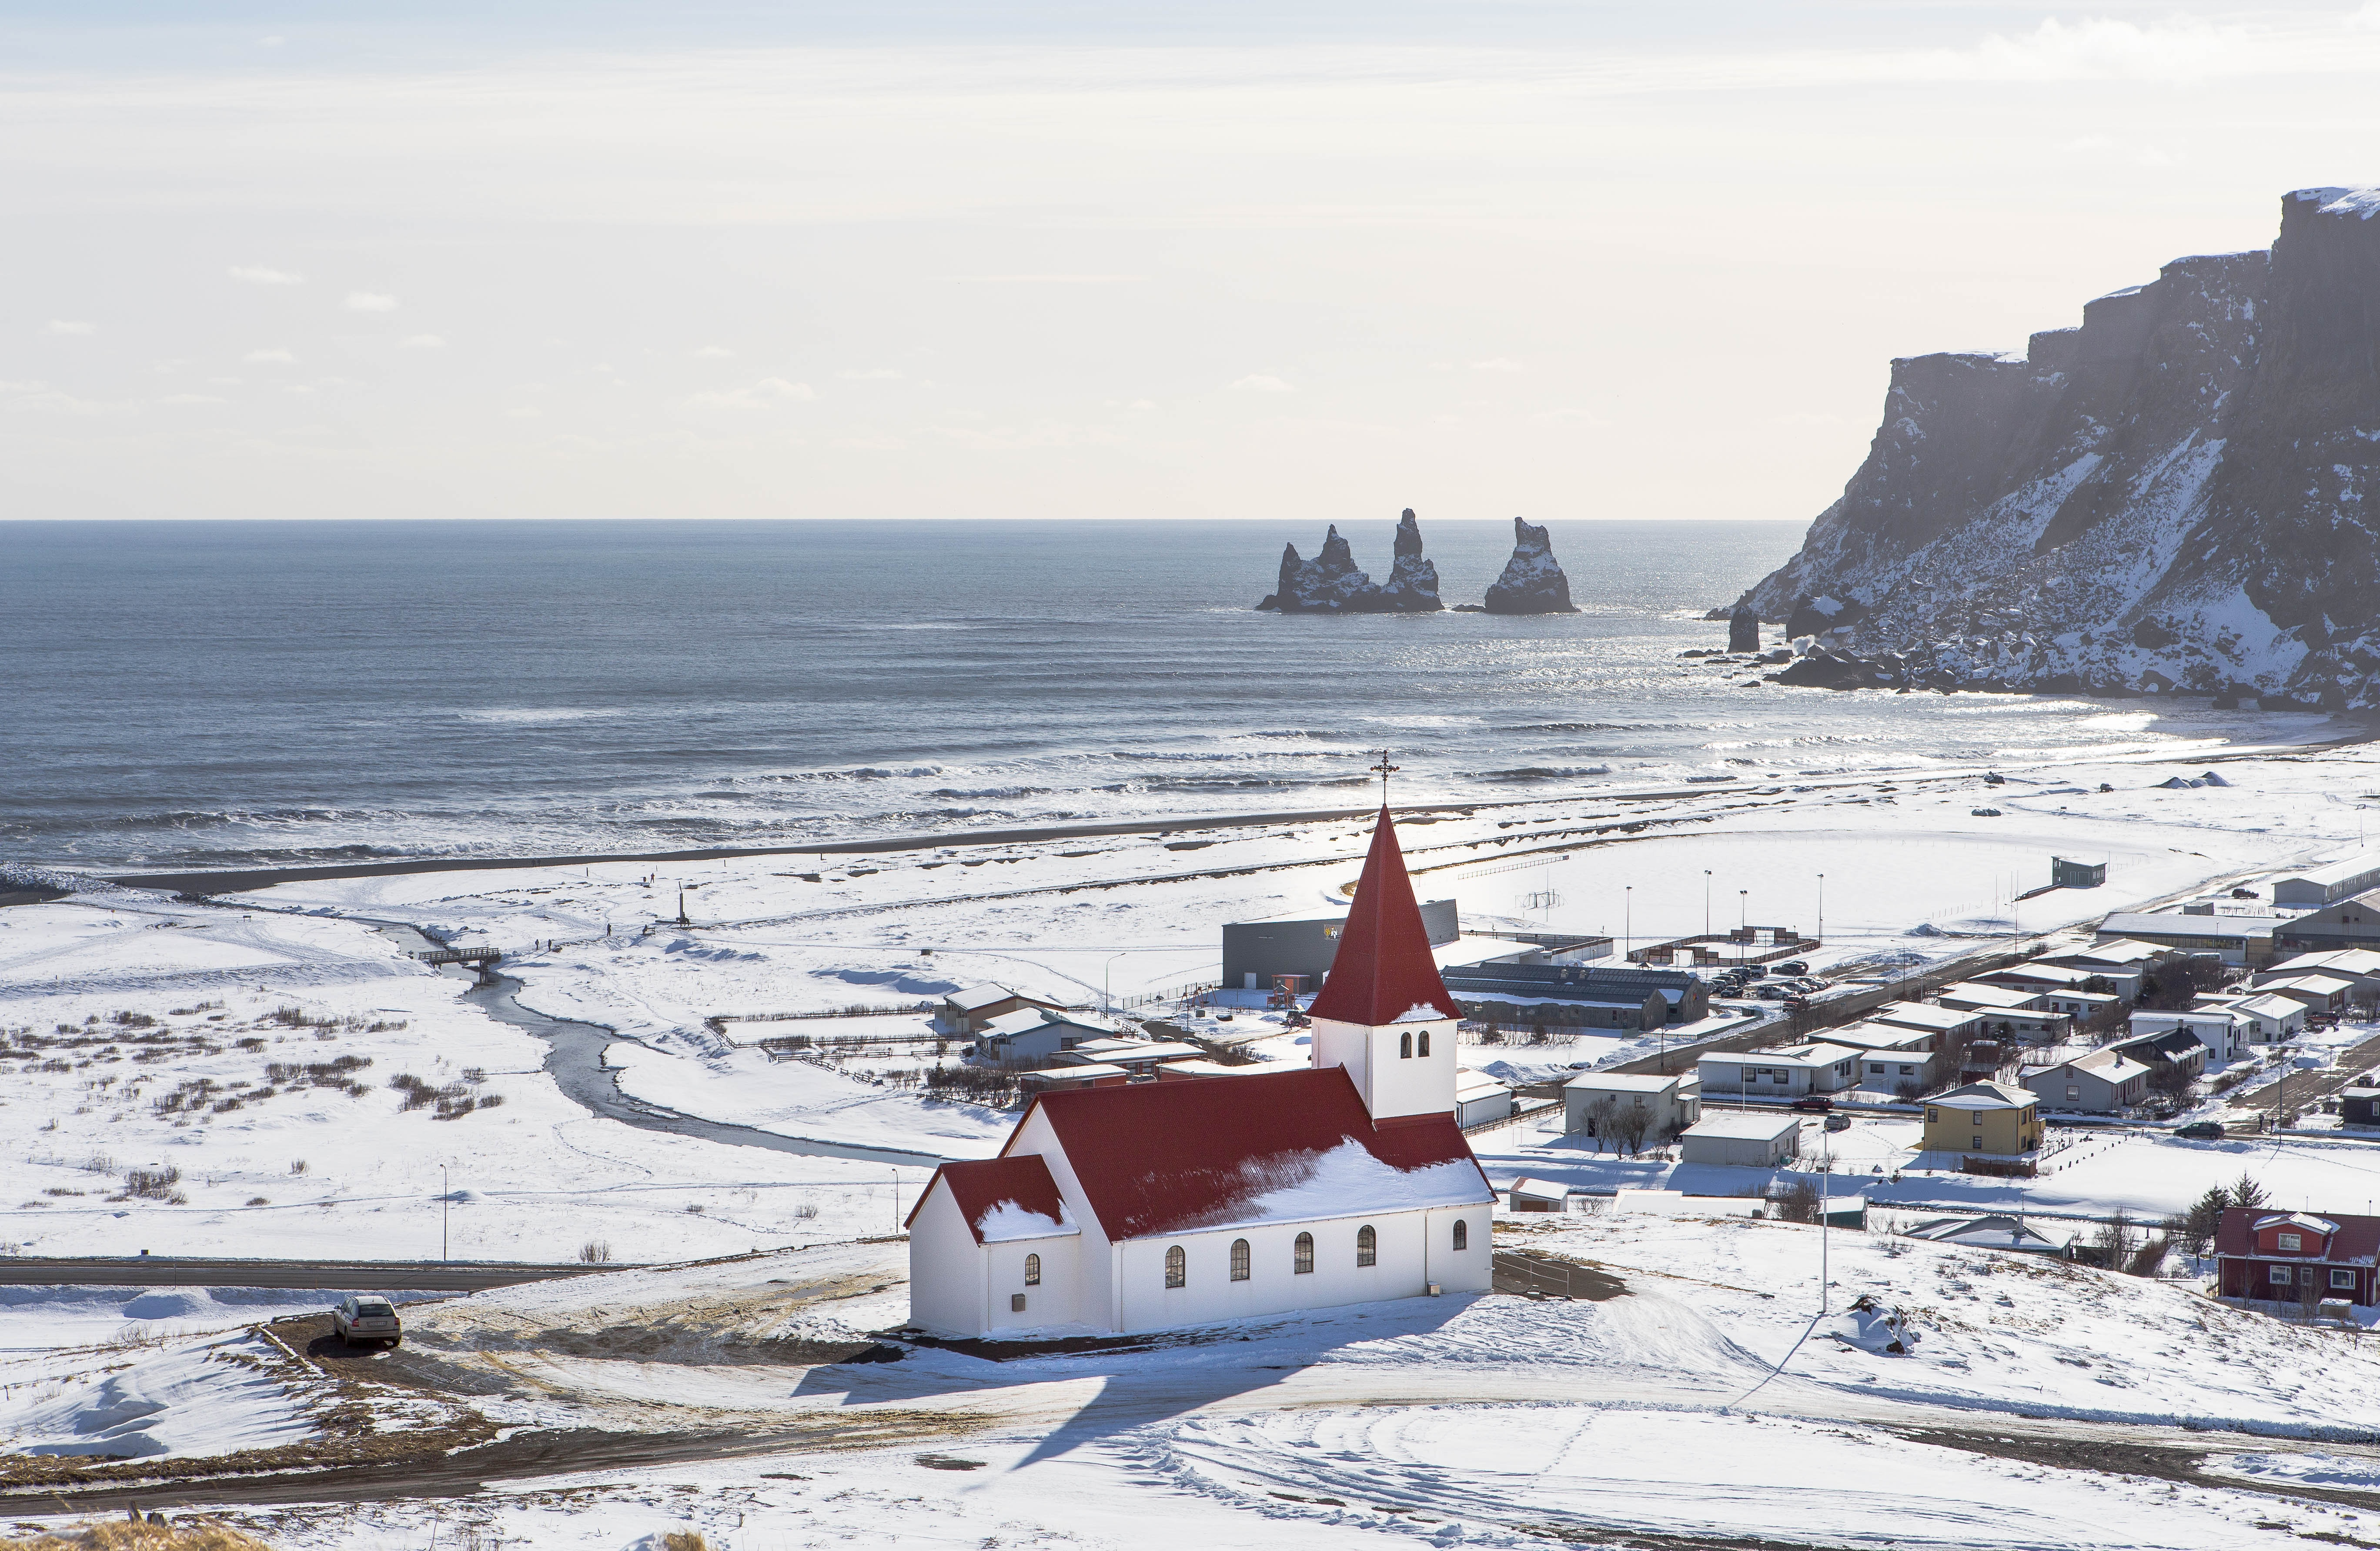 Https Guidetoiceland Is Book Holiday Trips Northern Lights And Lobster